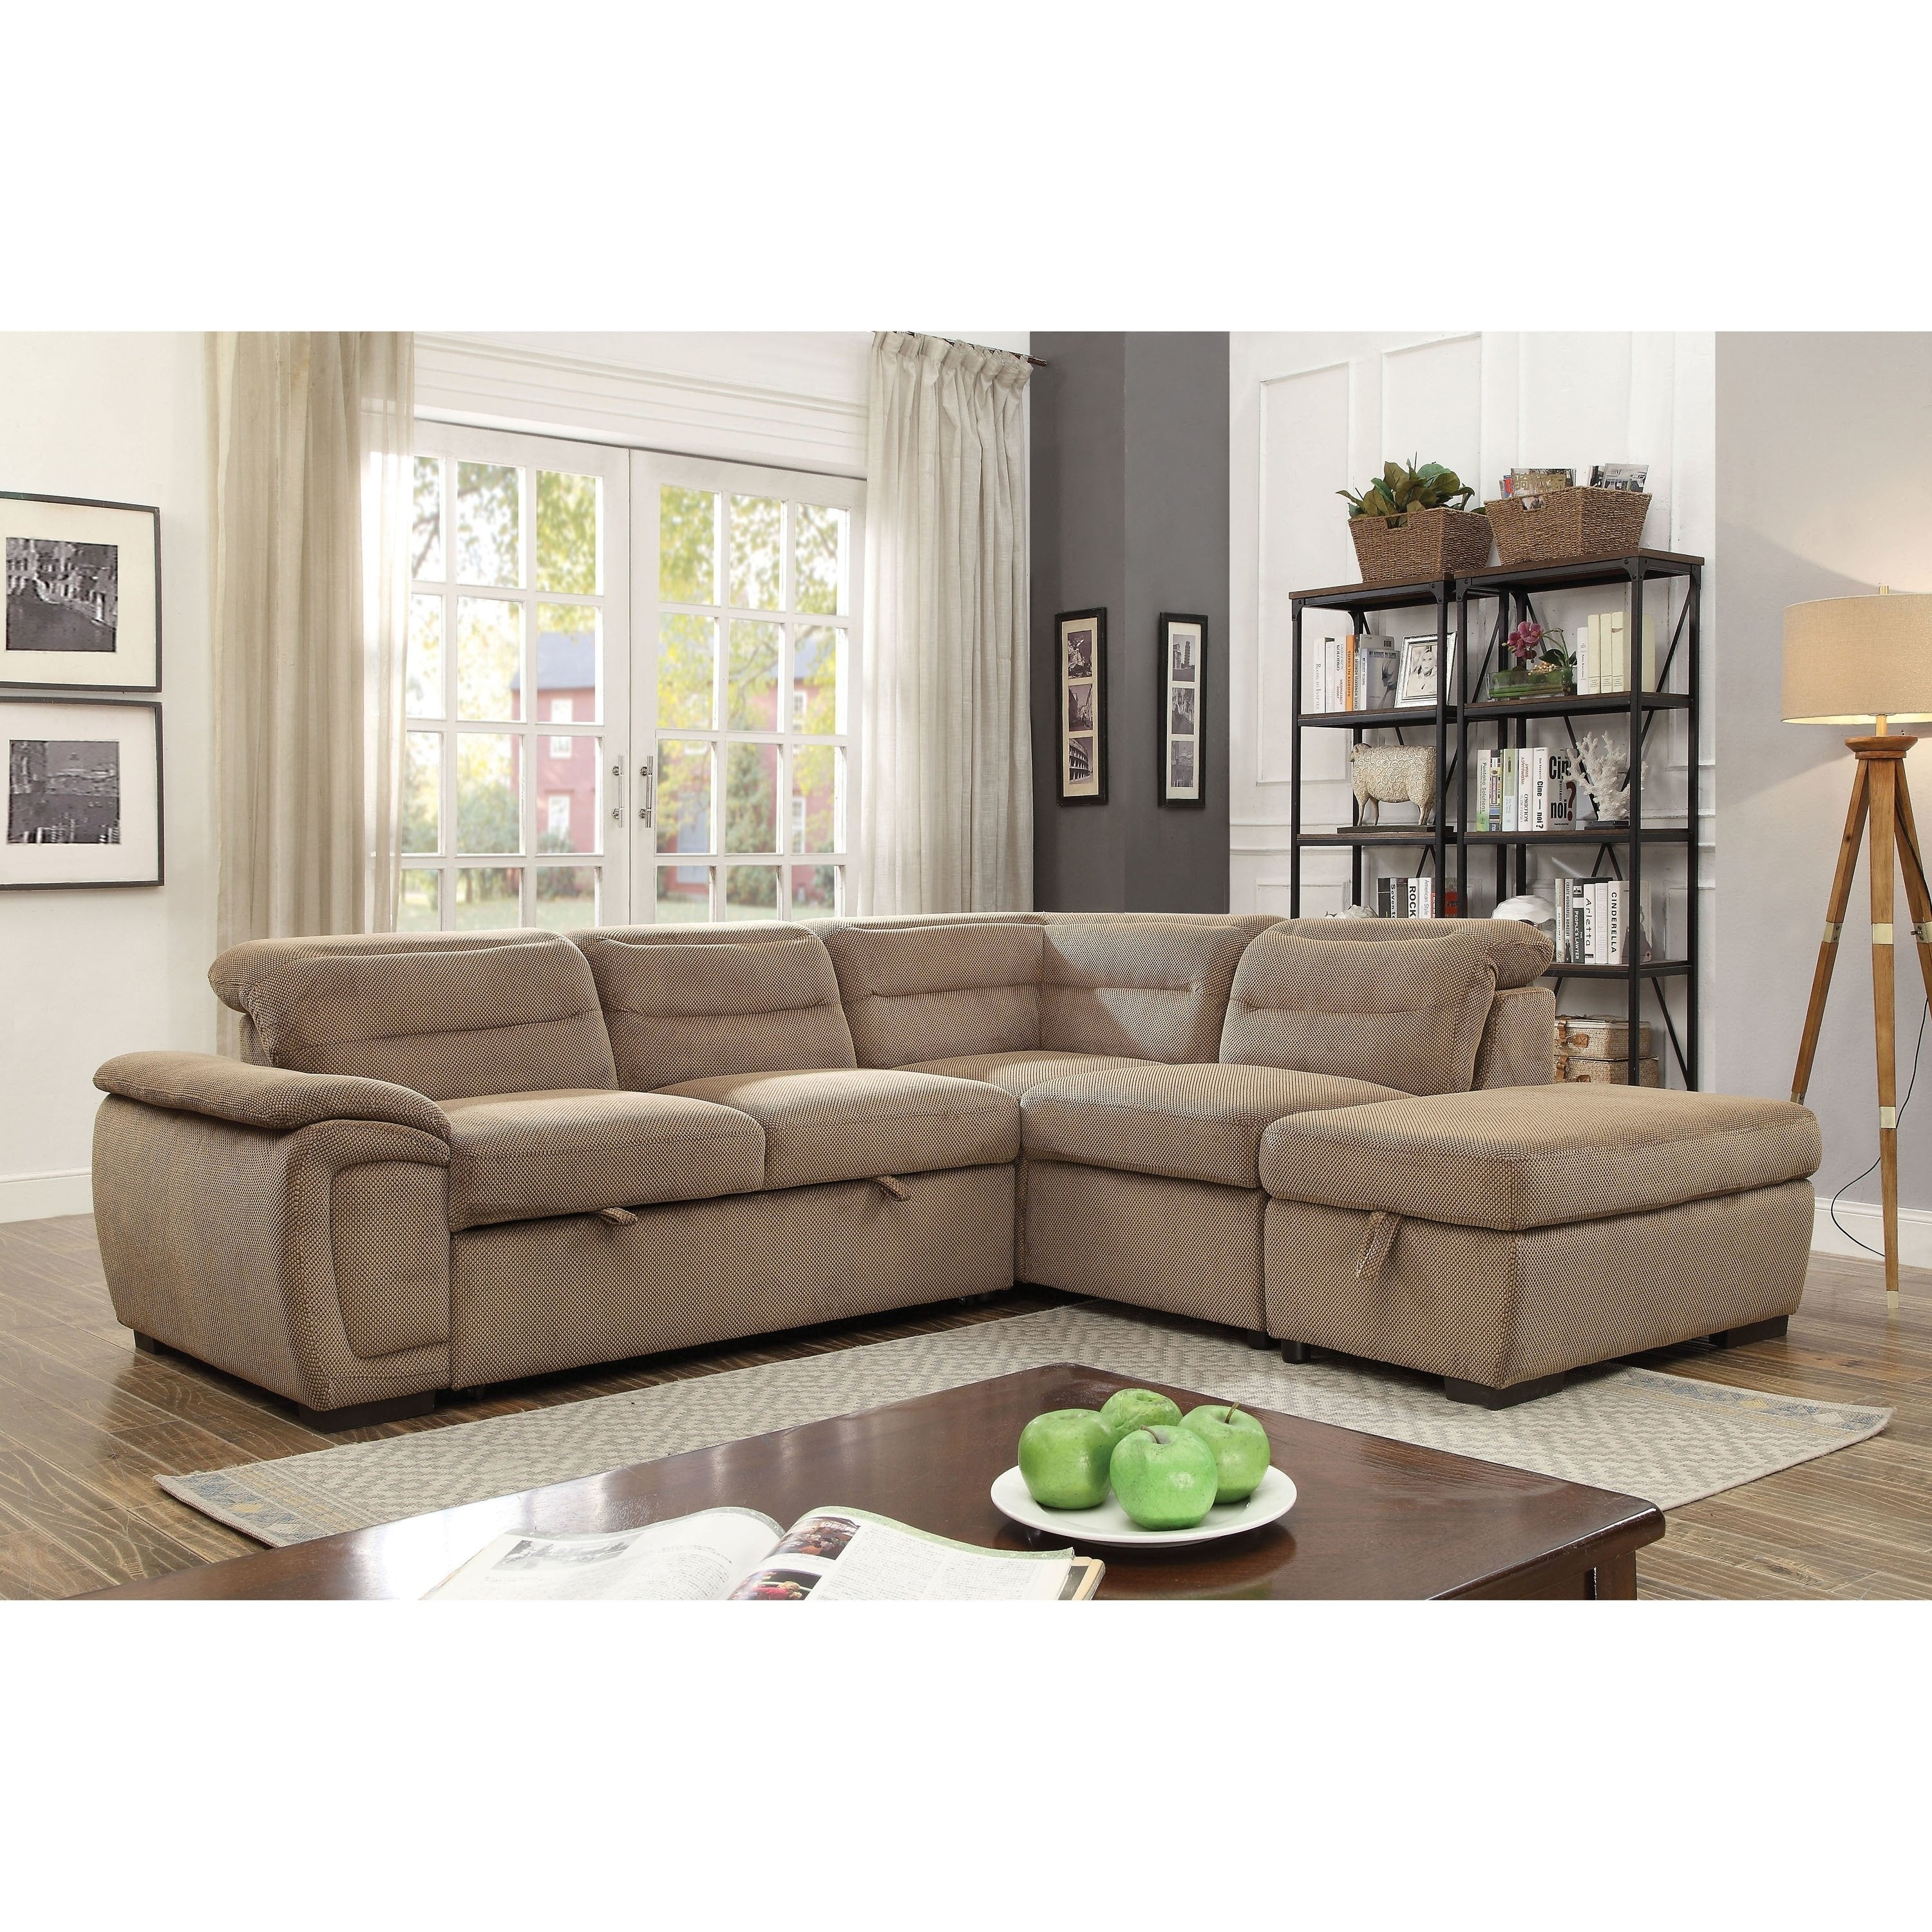 2 Piece Chenille Sleeper Sectional